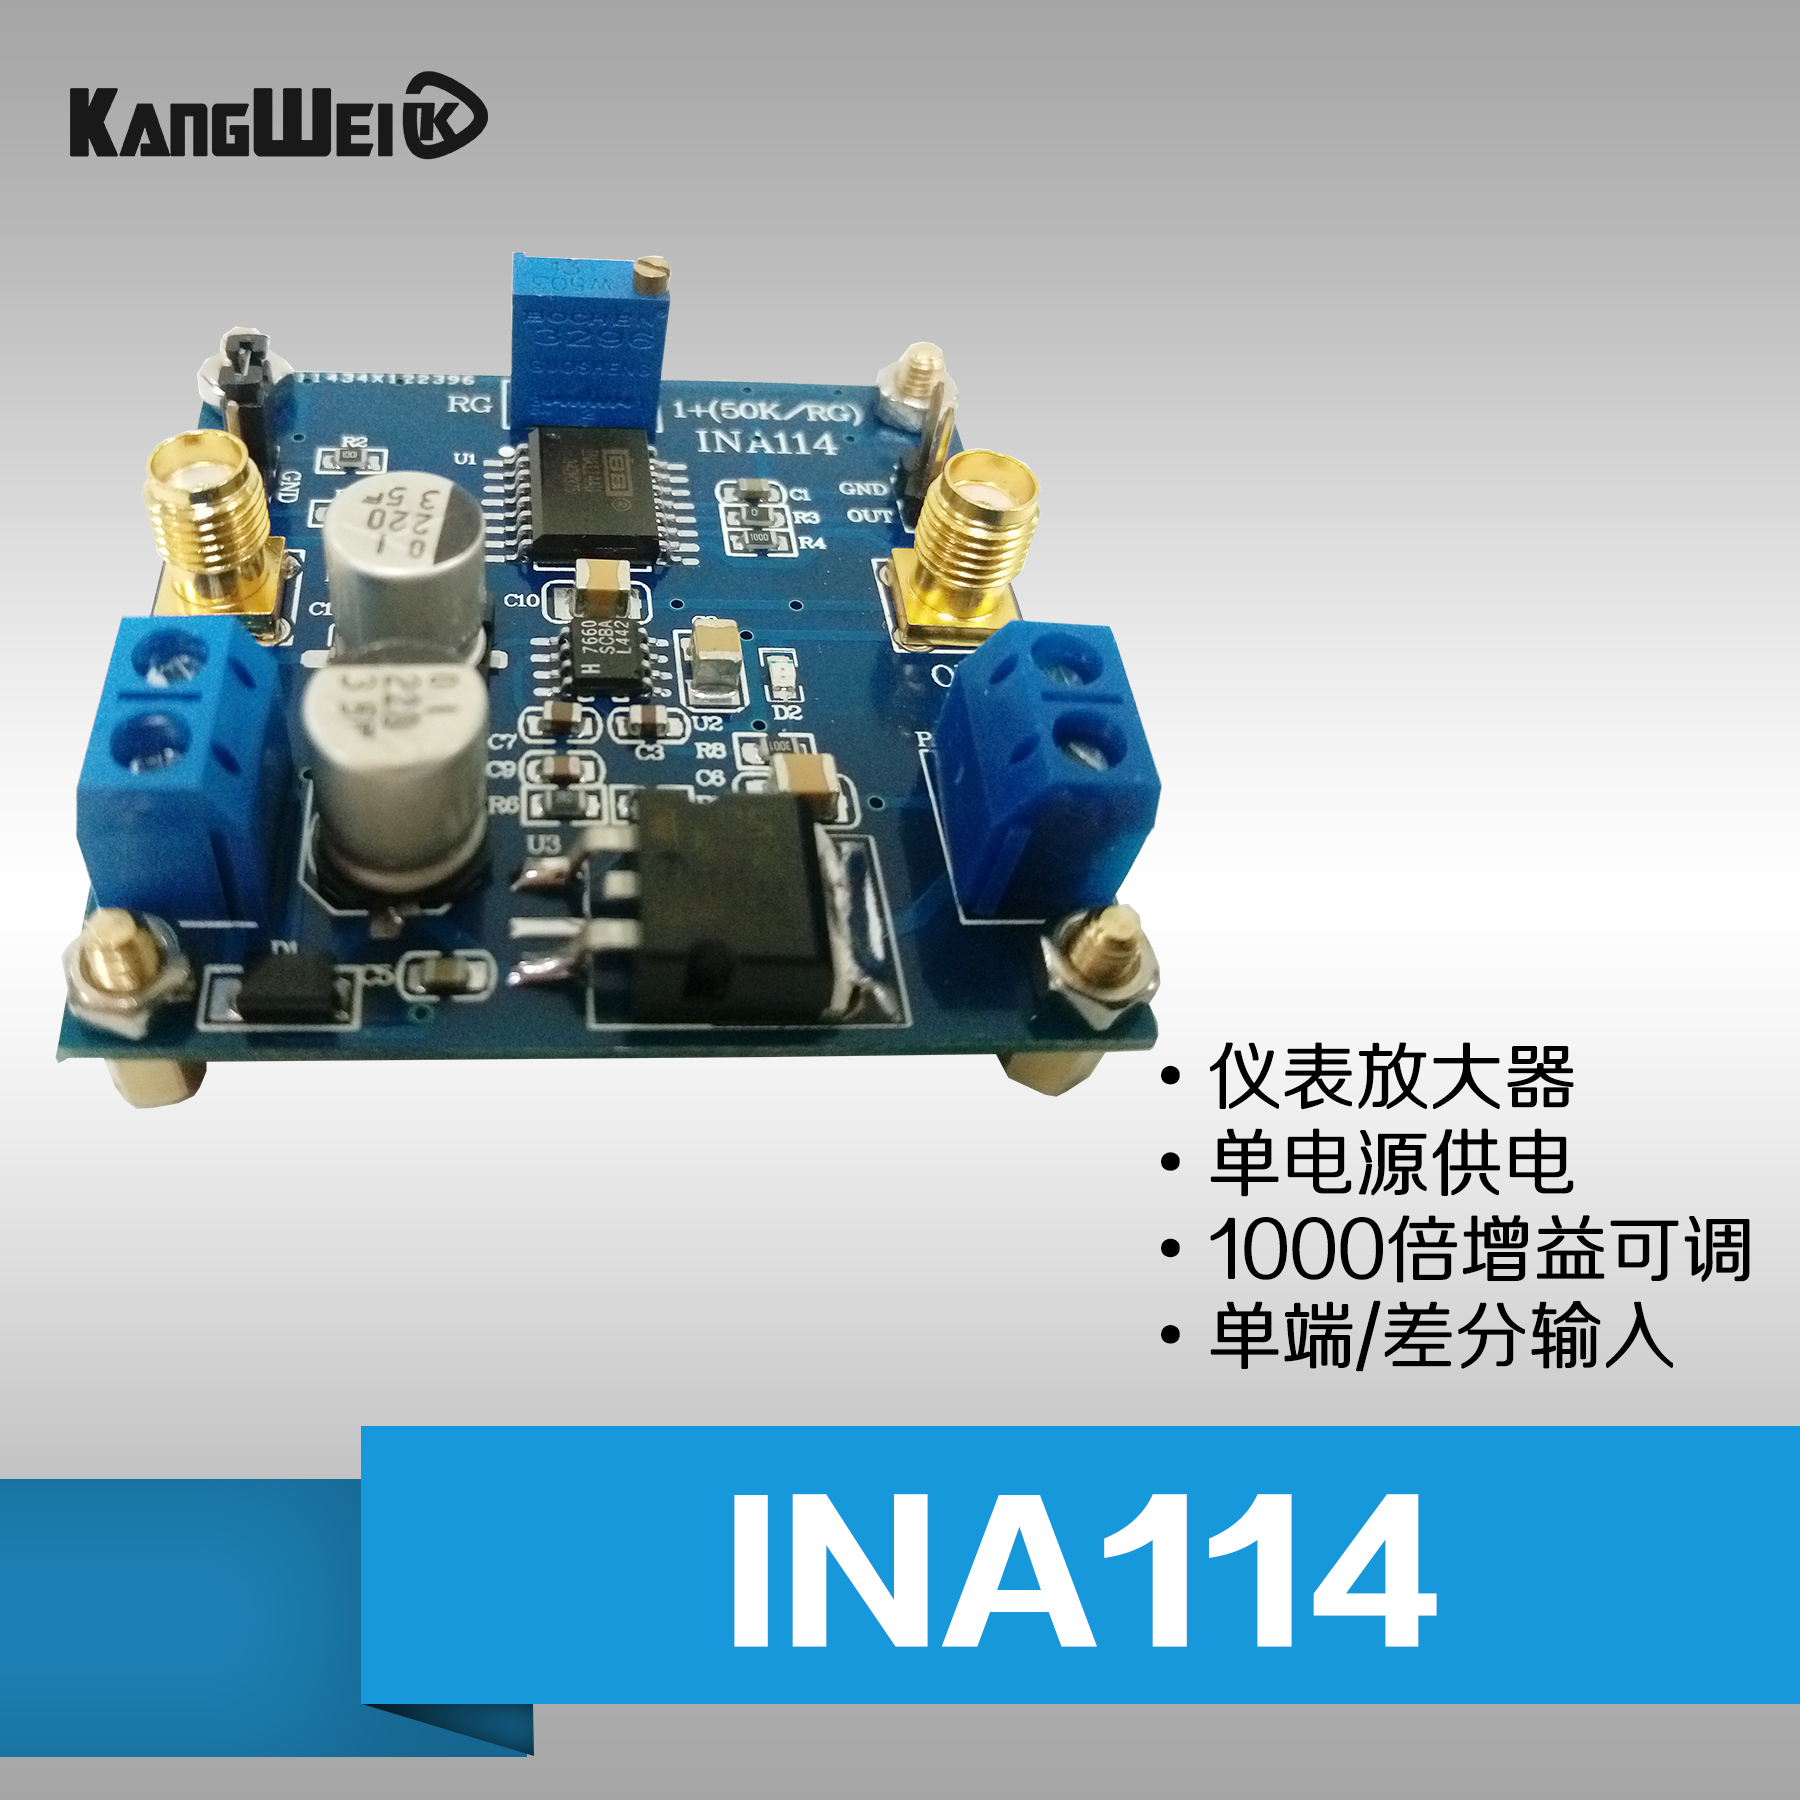 INA114 Instrument Amplifier 1000-fold Gain Adjustable Single Power Supply Single End/Differential Input